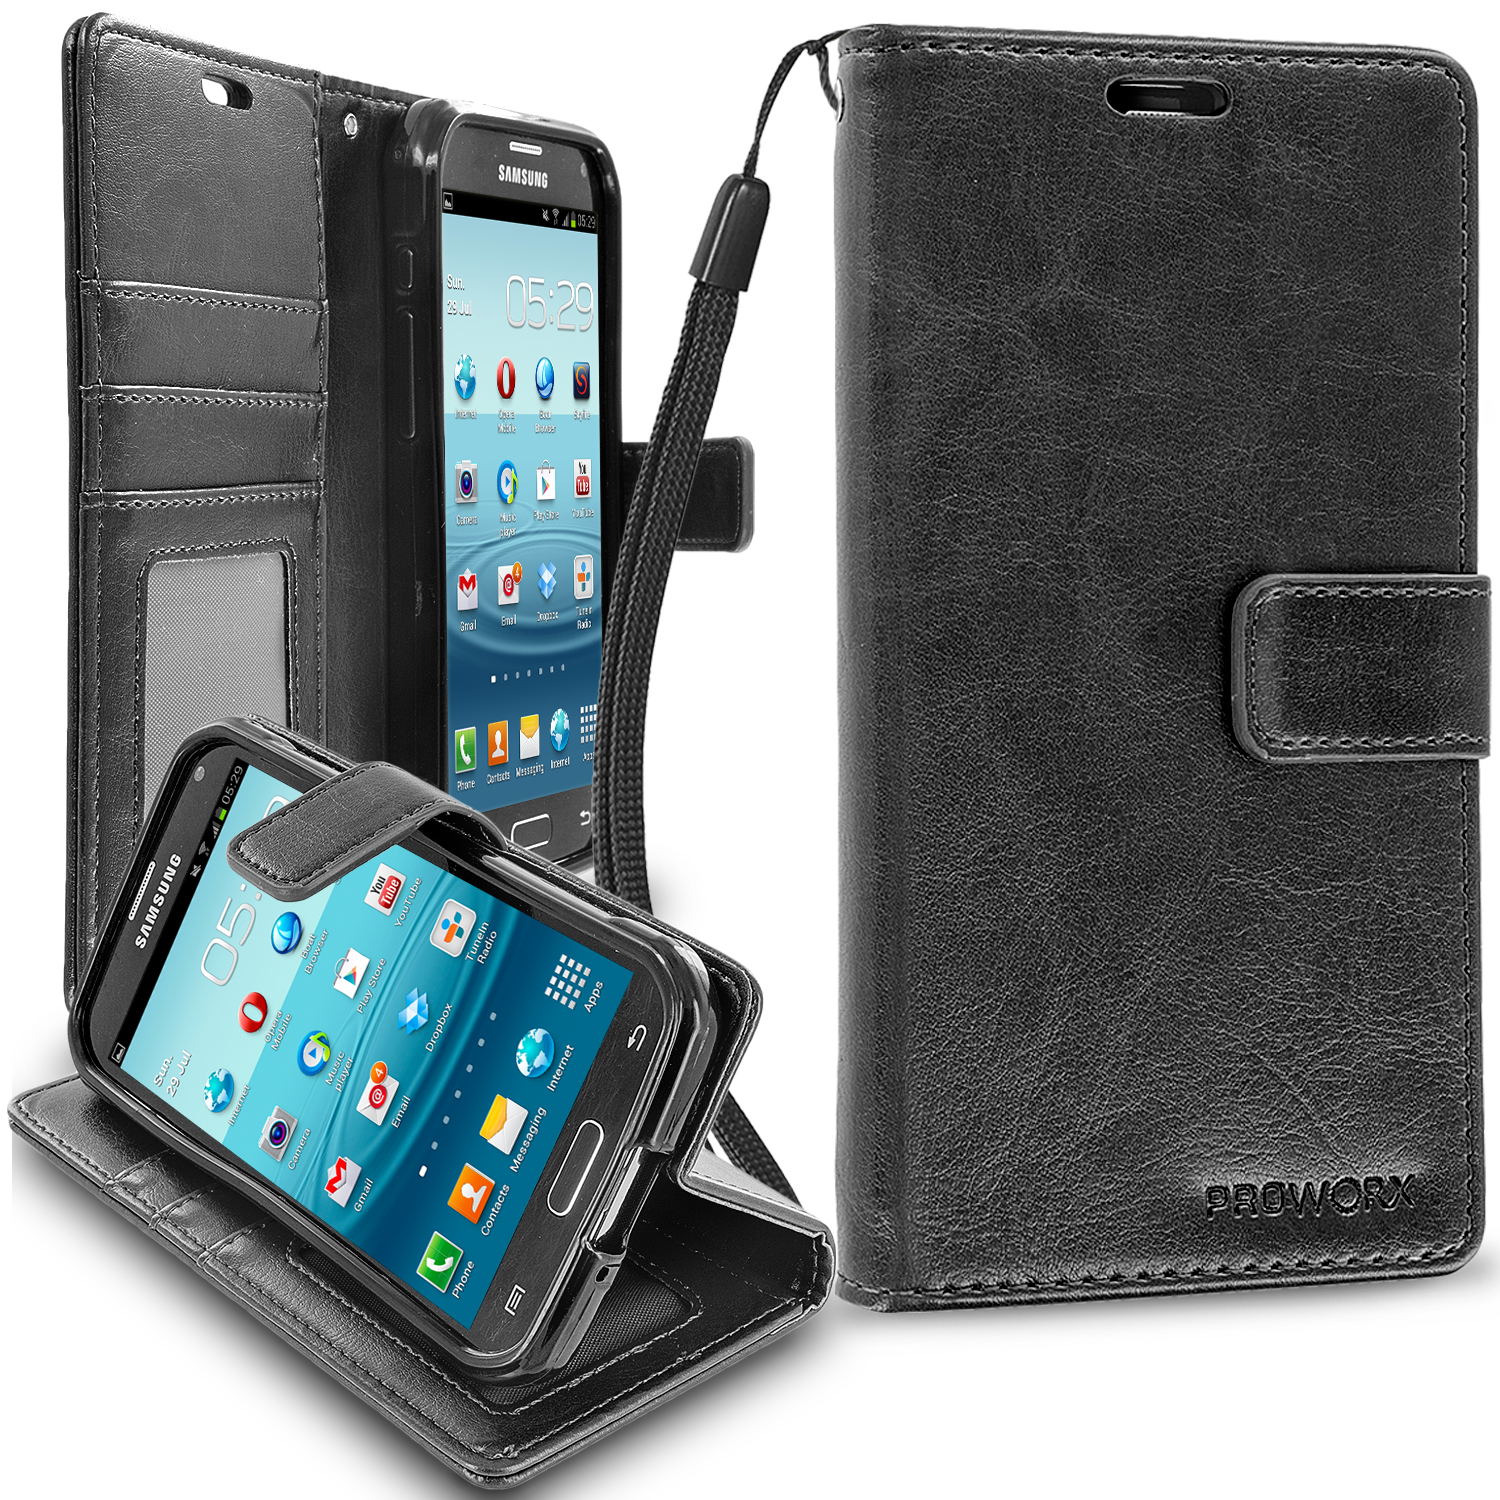 Samsung Galaxy S5 Active Black ProWorx Wallet Case Luxury PU Leather Case Cover With Card Slots & Stand